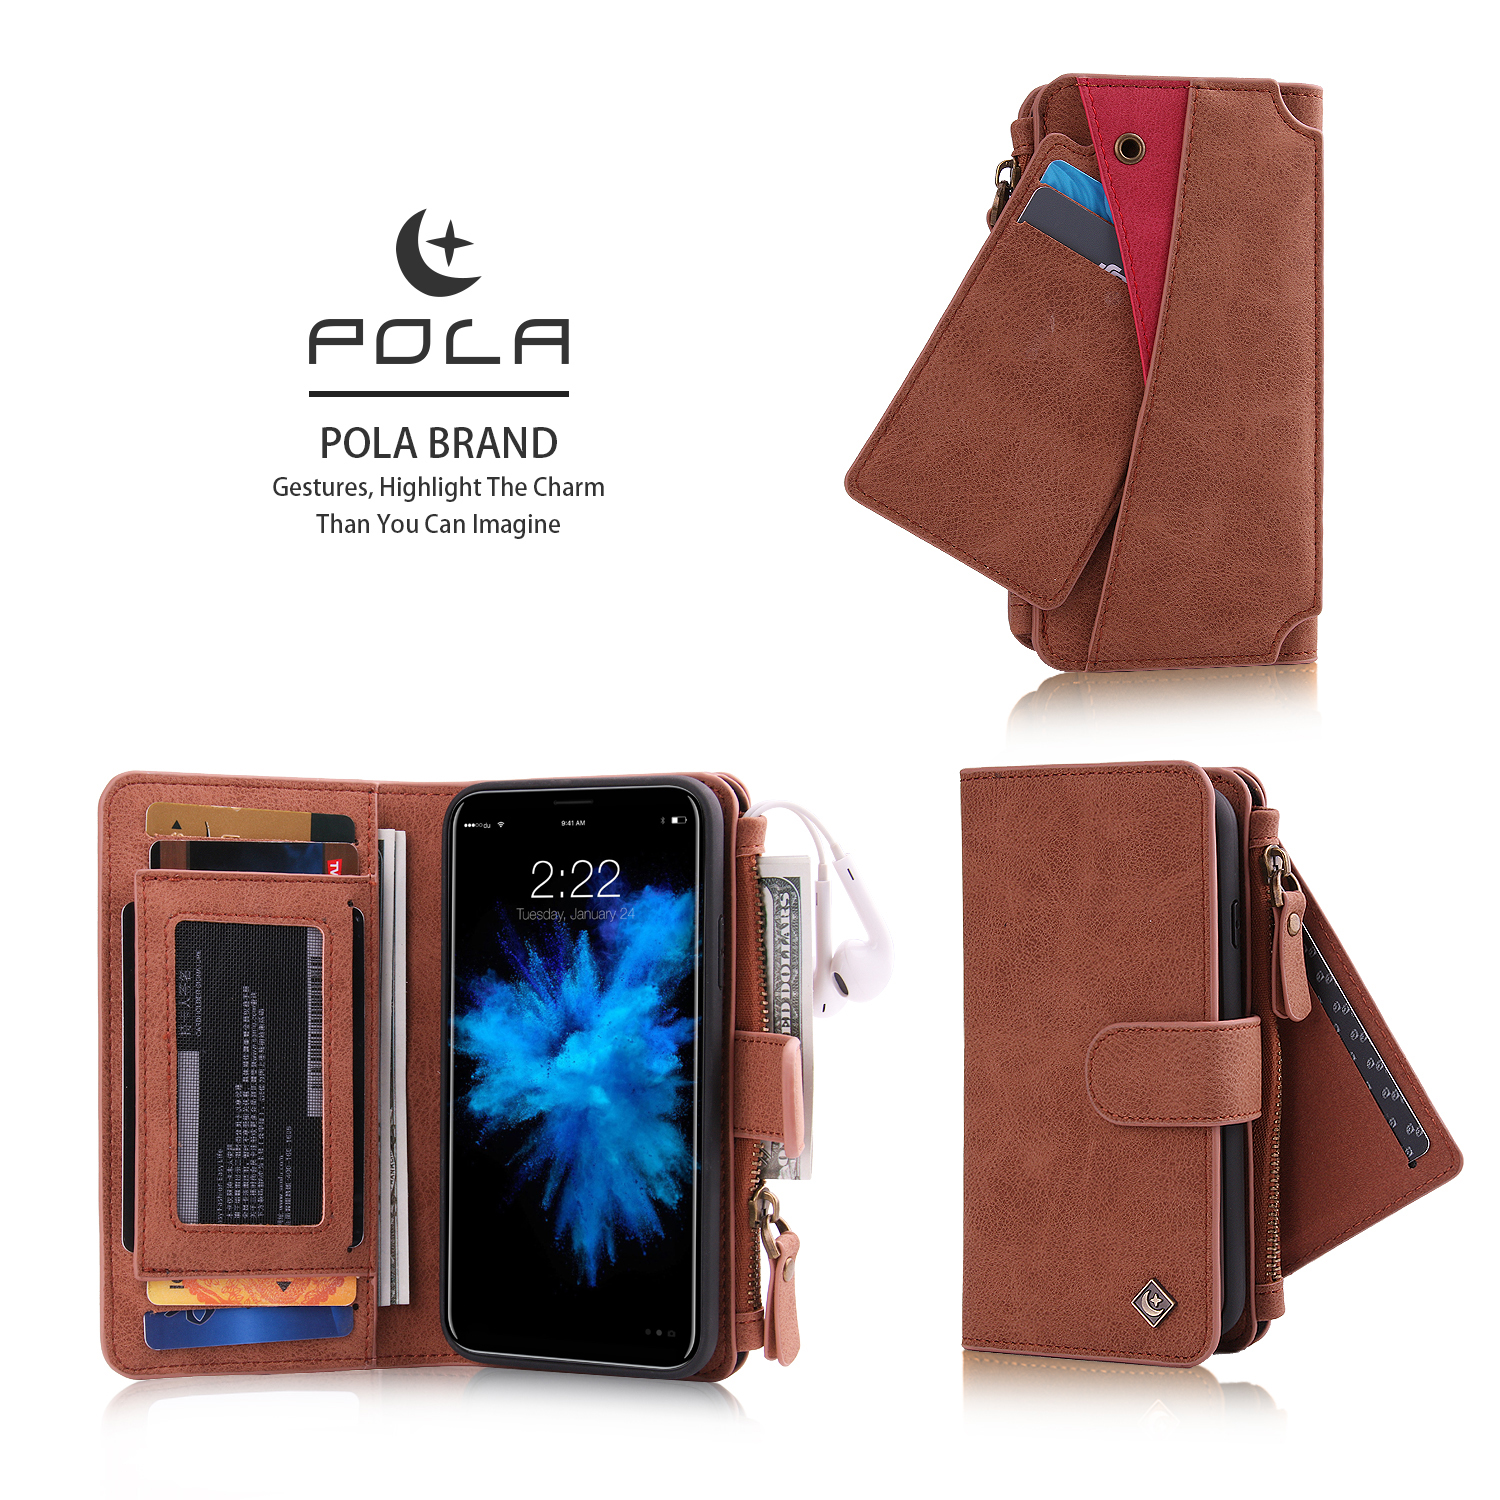 POLA Magnetic Detachable Wallet Card Slot Case For iPhone X/8/8 Plus/7/7 Plus/6s/6s Plus/6/6 Plus